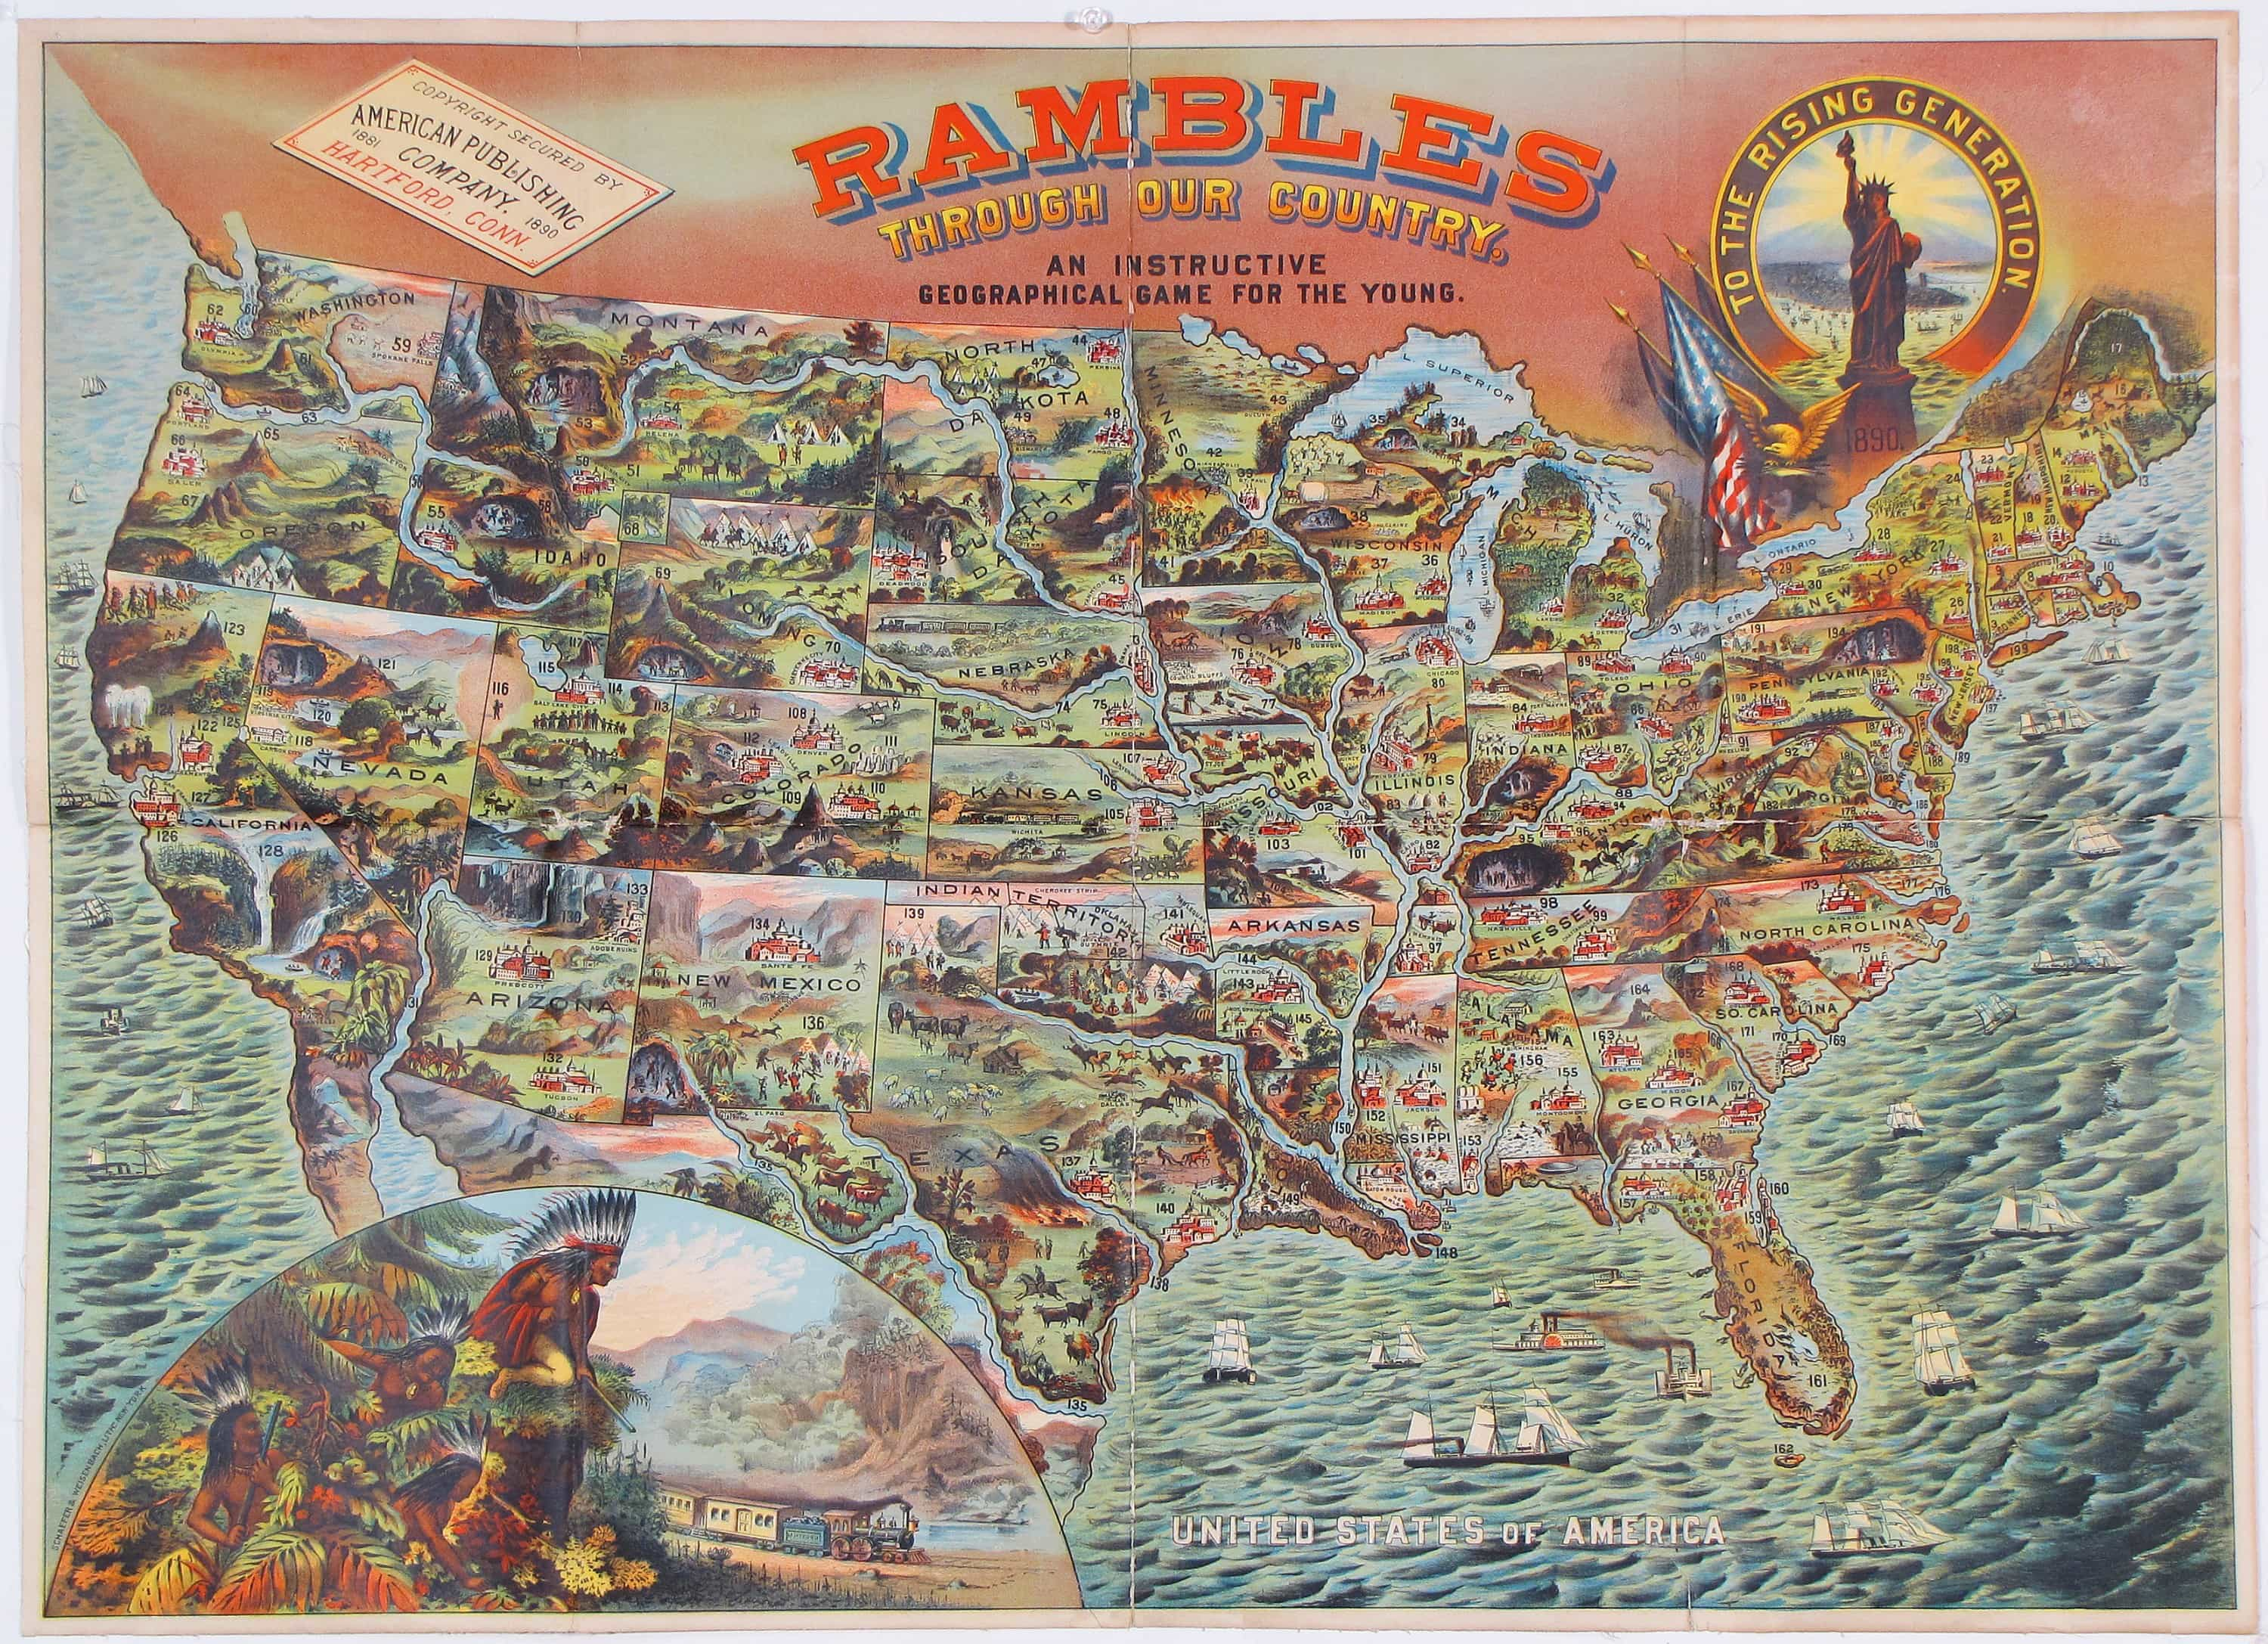 A spectacular chromolithographic map of the United States ...